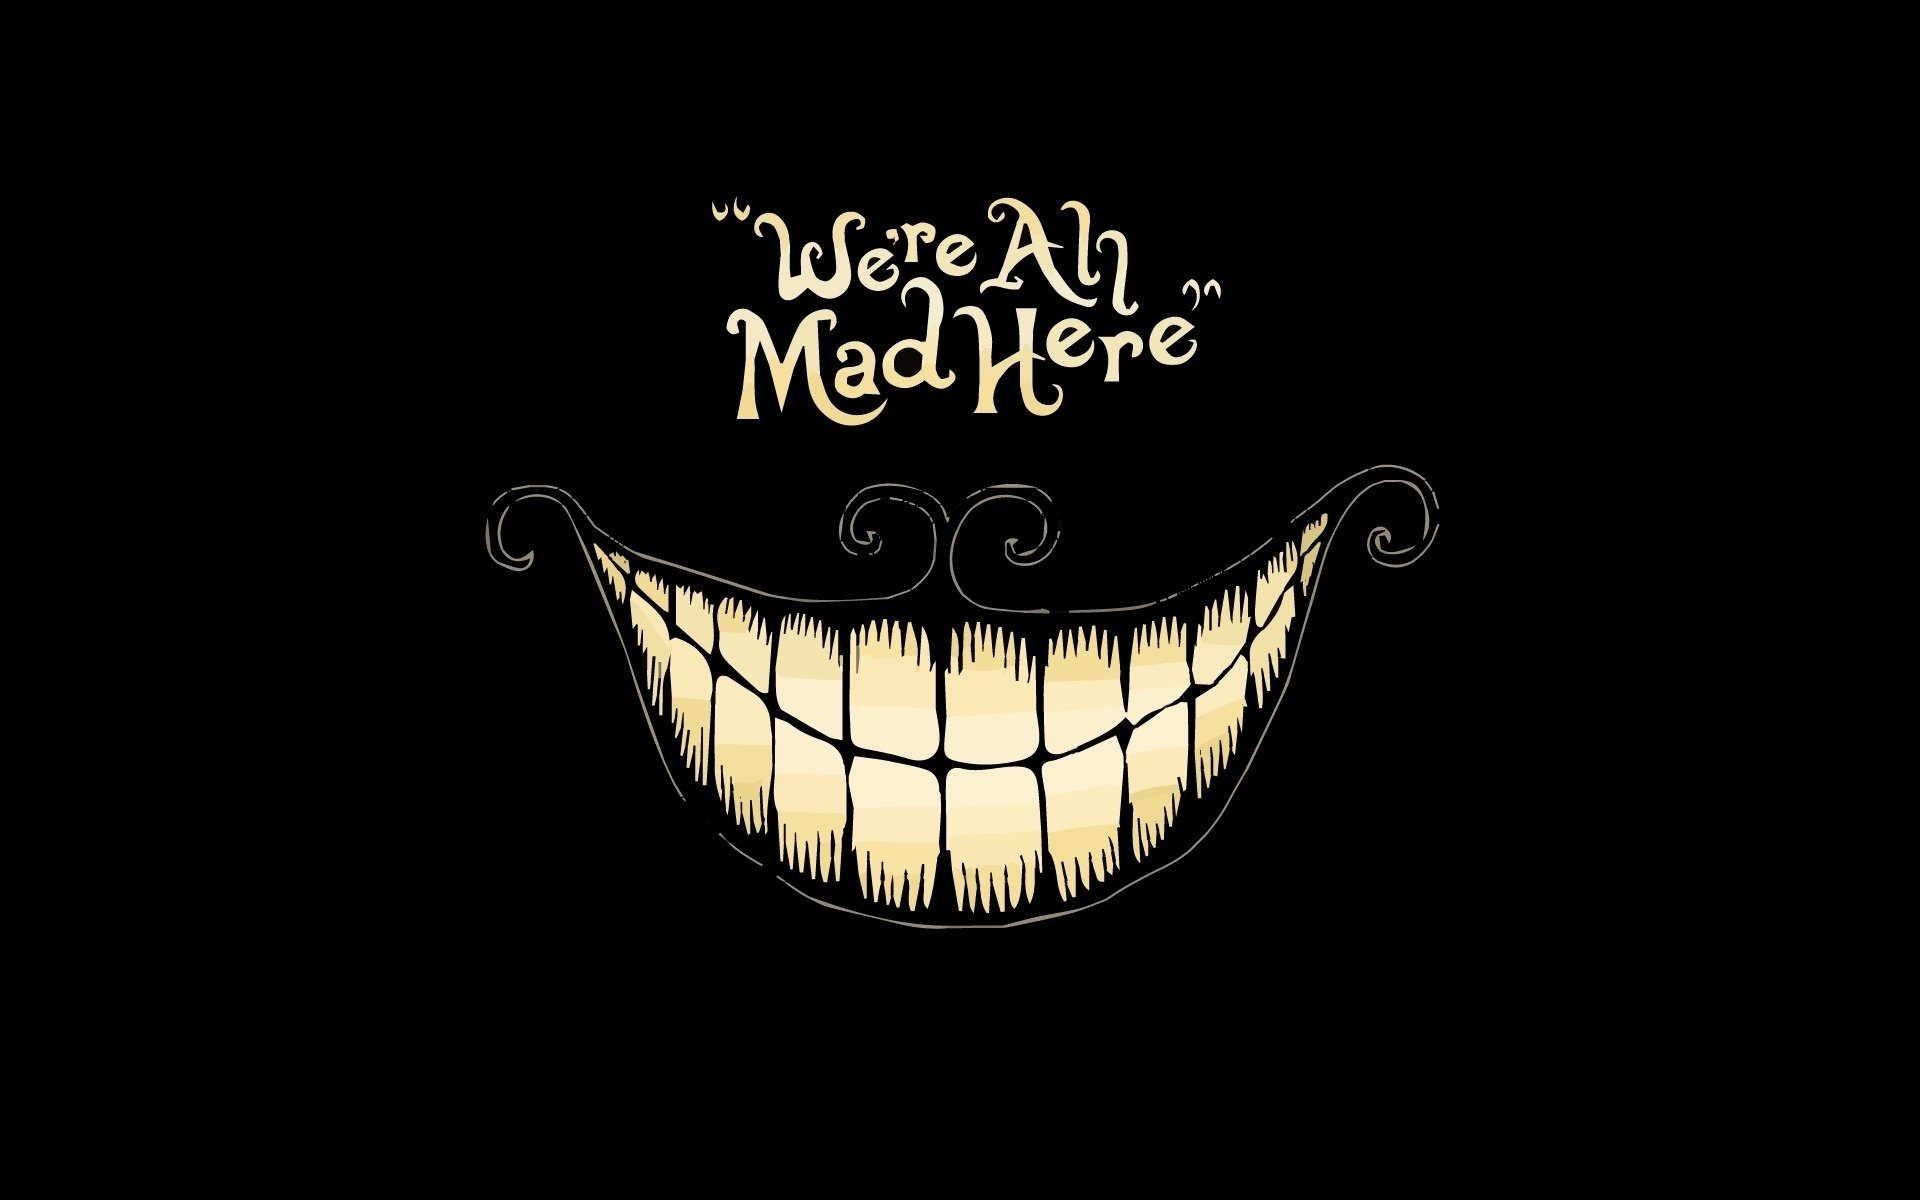 We Re All Mad Here Hd Wallpaper Background Image 1920x1200